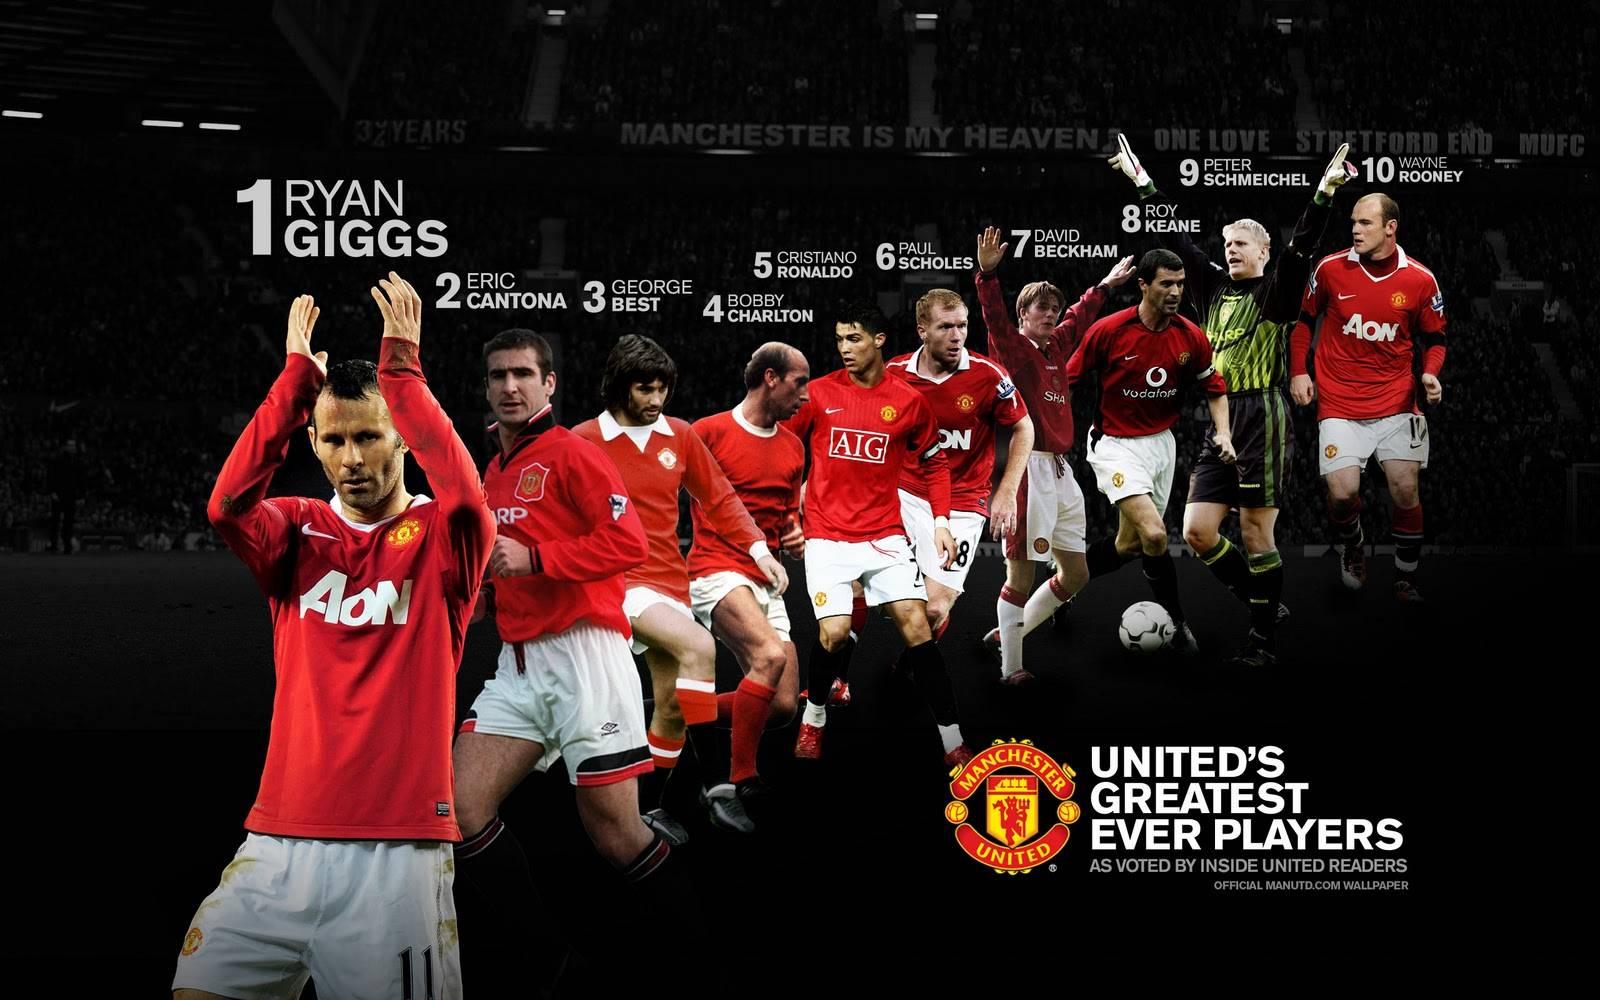 Manchester United Wallpaper Desktop Background Epic Wallpaperz 1600x1000